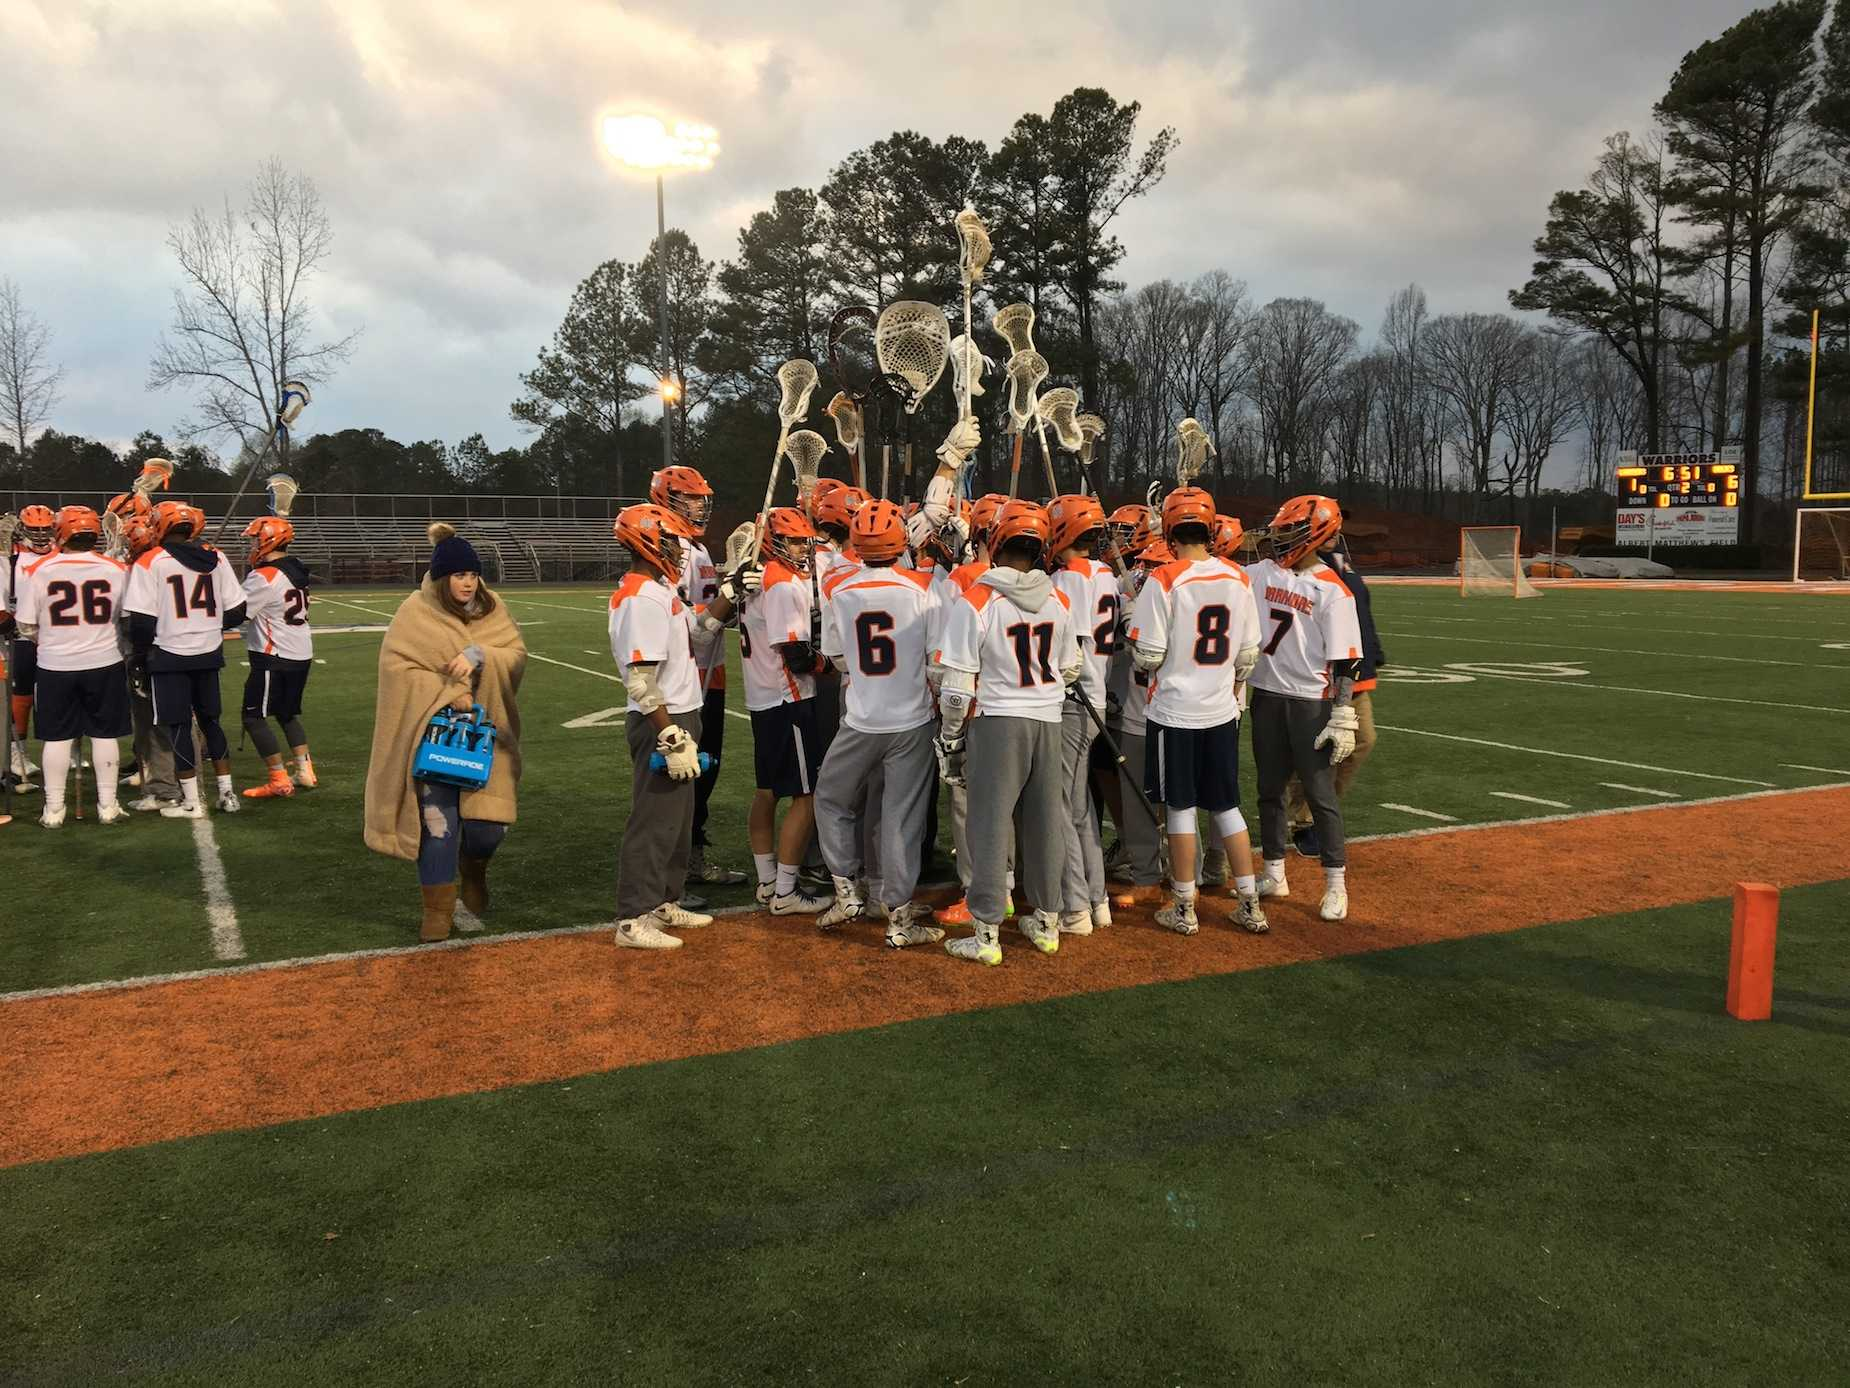 The NC Varsity boys Lacrosse team played against the Hillgrove Hawks on Tuesday night, March 14, losing 14-4.